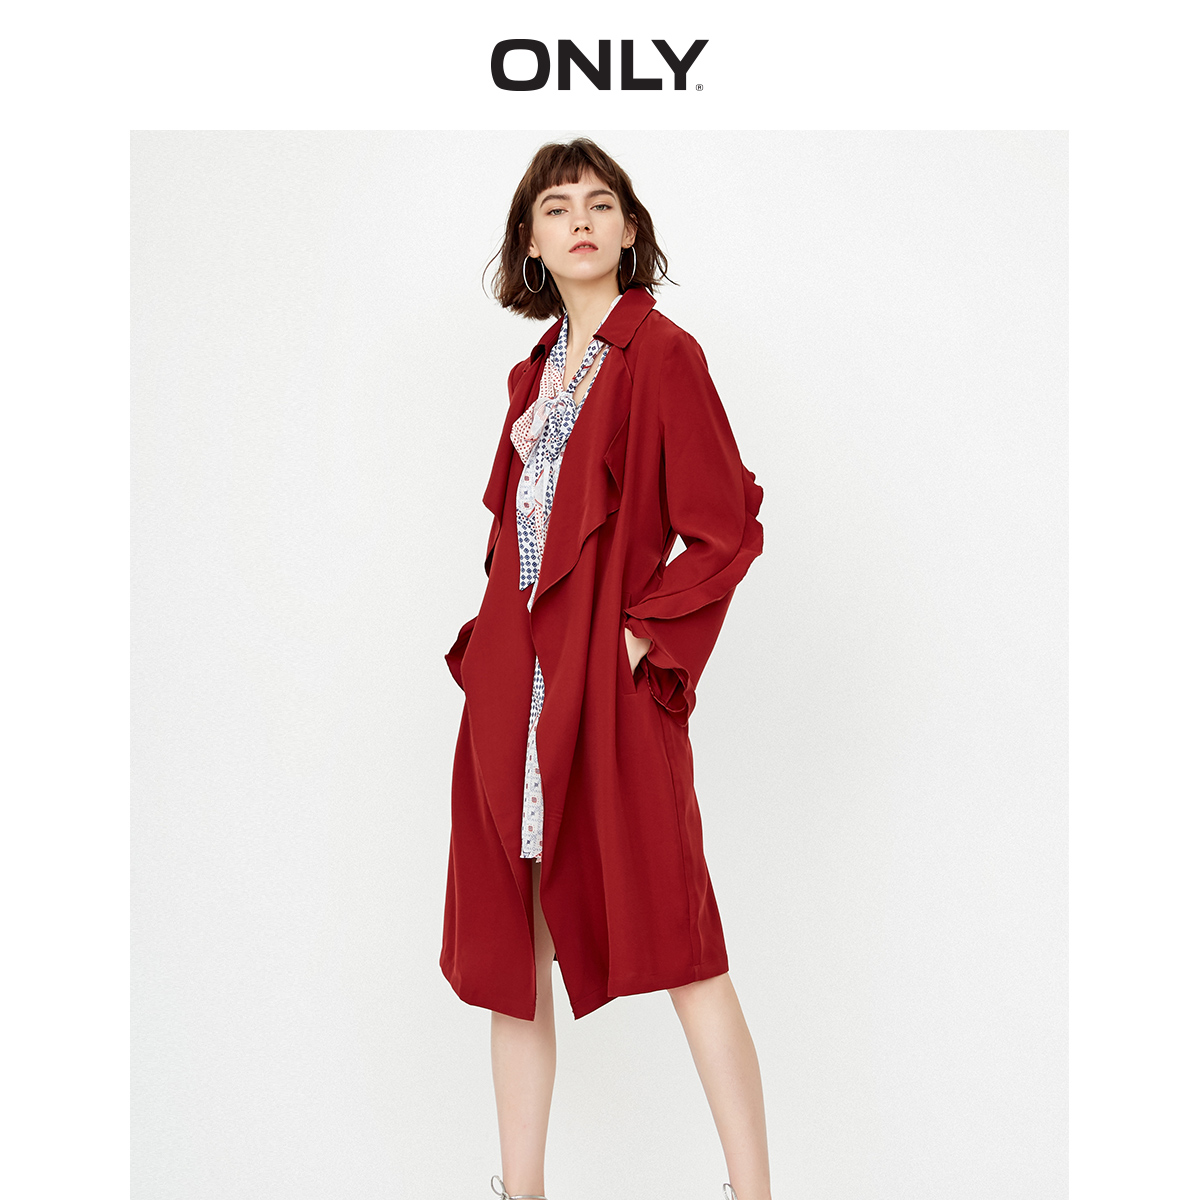 ONLY Women's Slim Fit Lace-up Ruffled Long Wind Coat | 118336510